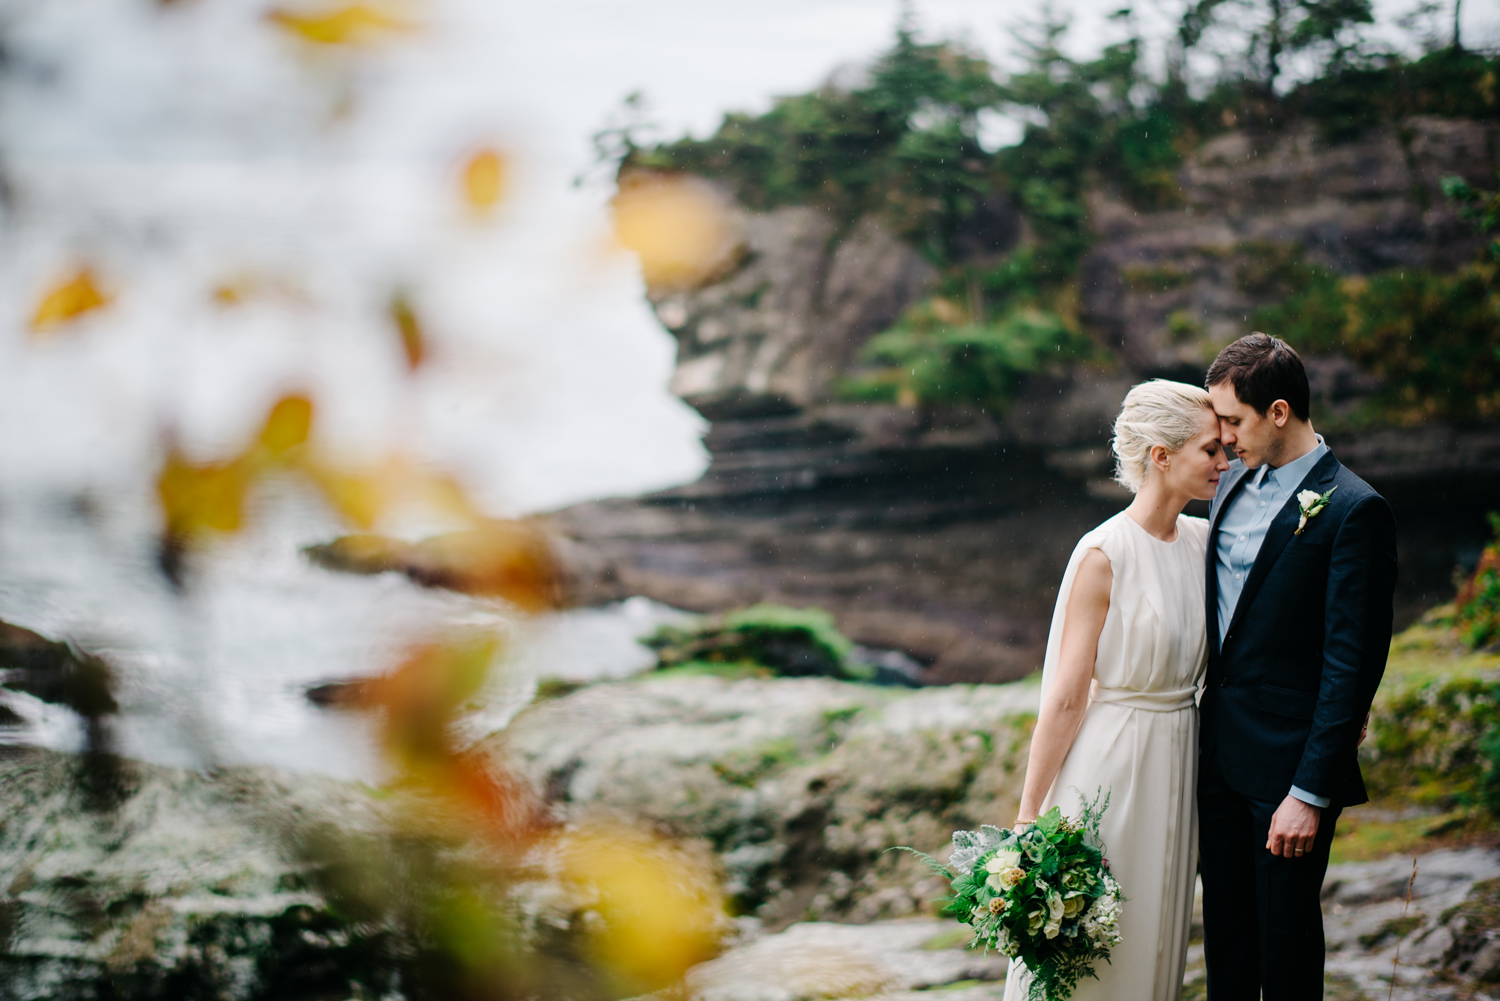 027-pnw-coastal-elopement-at-cape-flattery-by-seattle-wedding-photographer-ryan-flynn.jpg